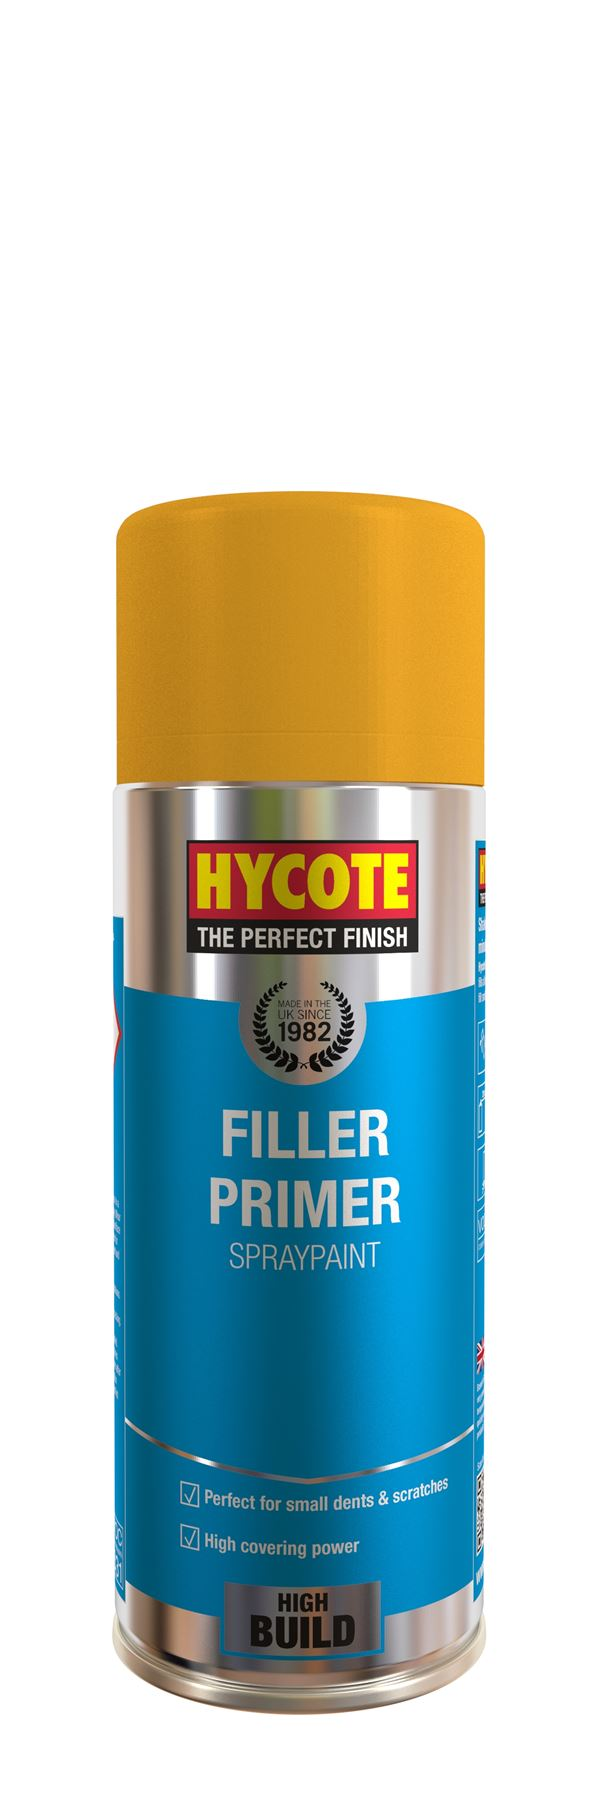 Hycote Filler Primer - 400ml